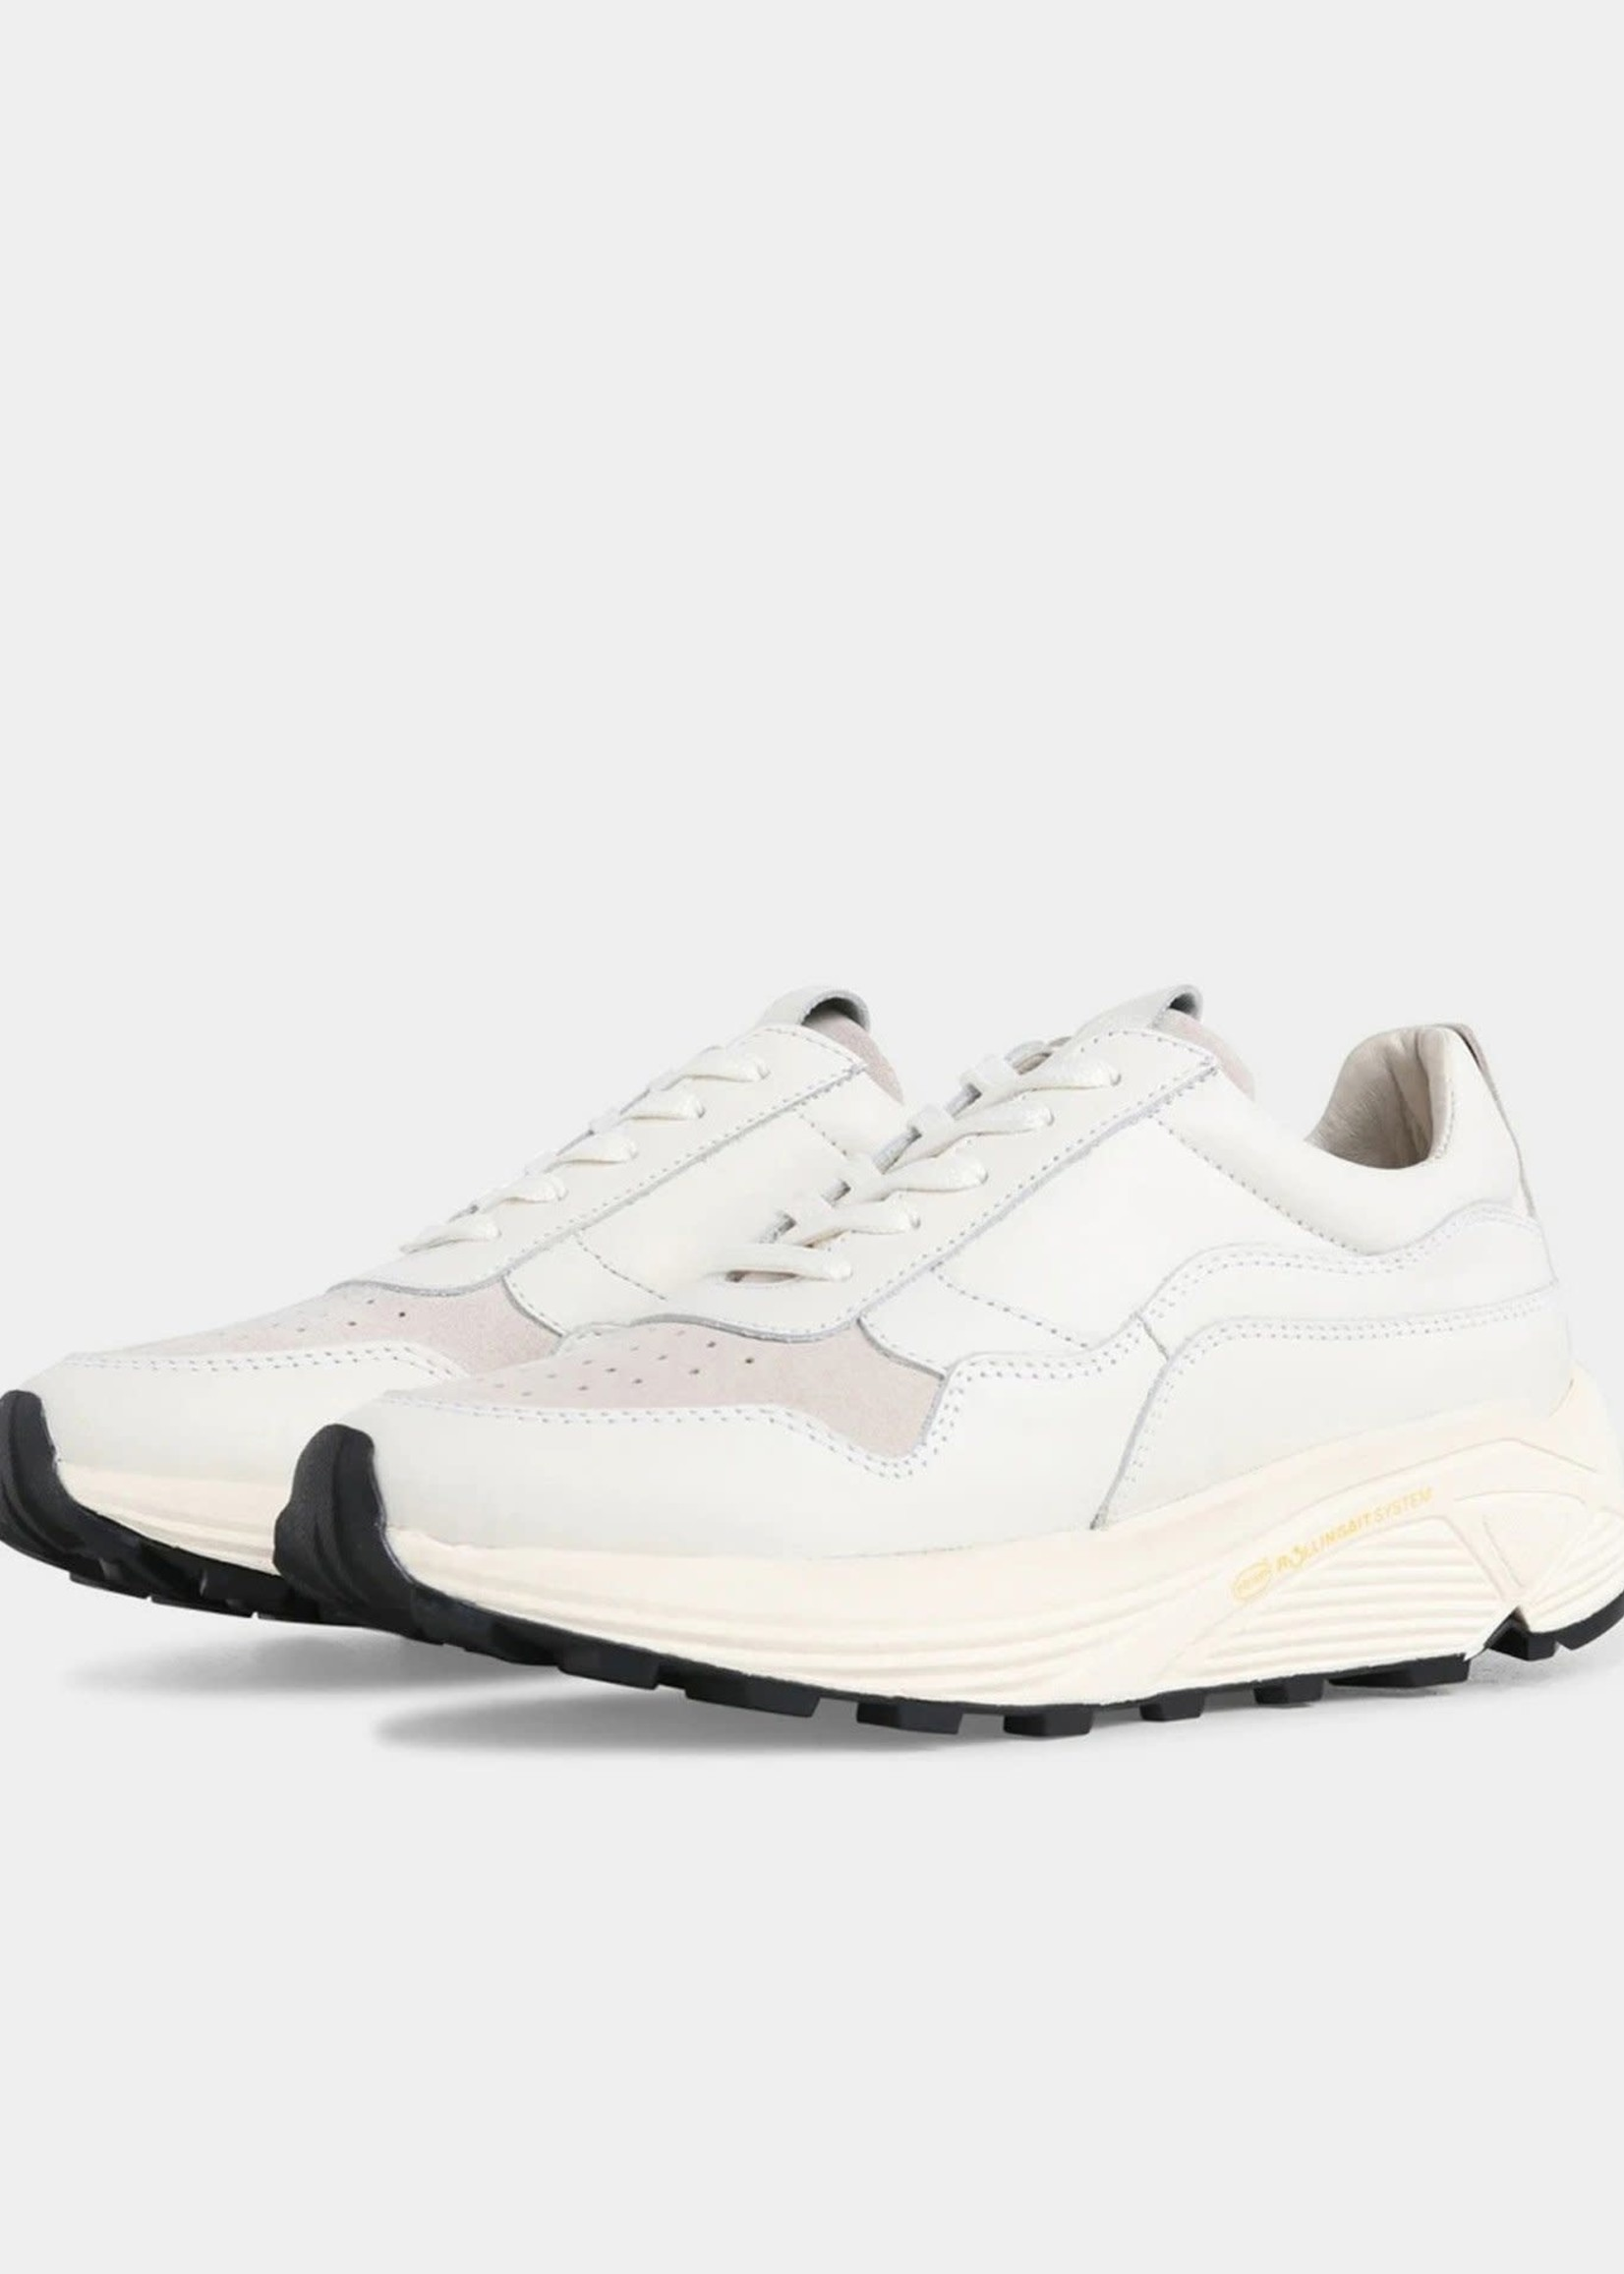 Garment Project Bailey Runner - White Leather